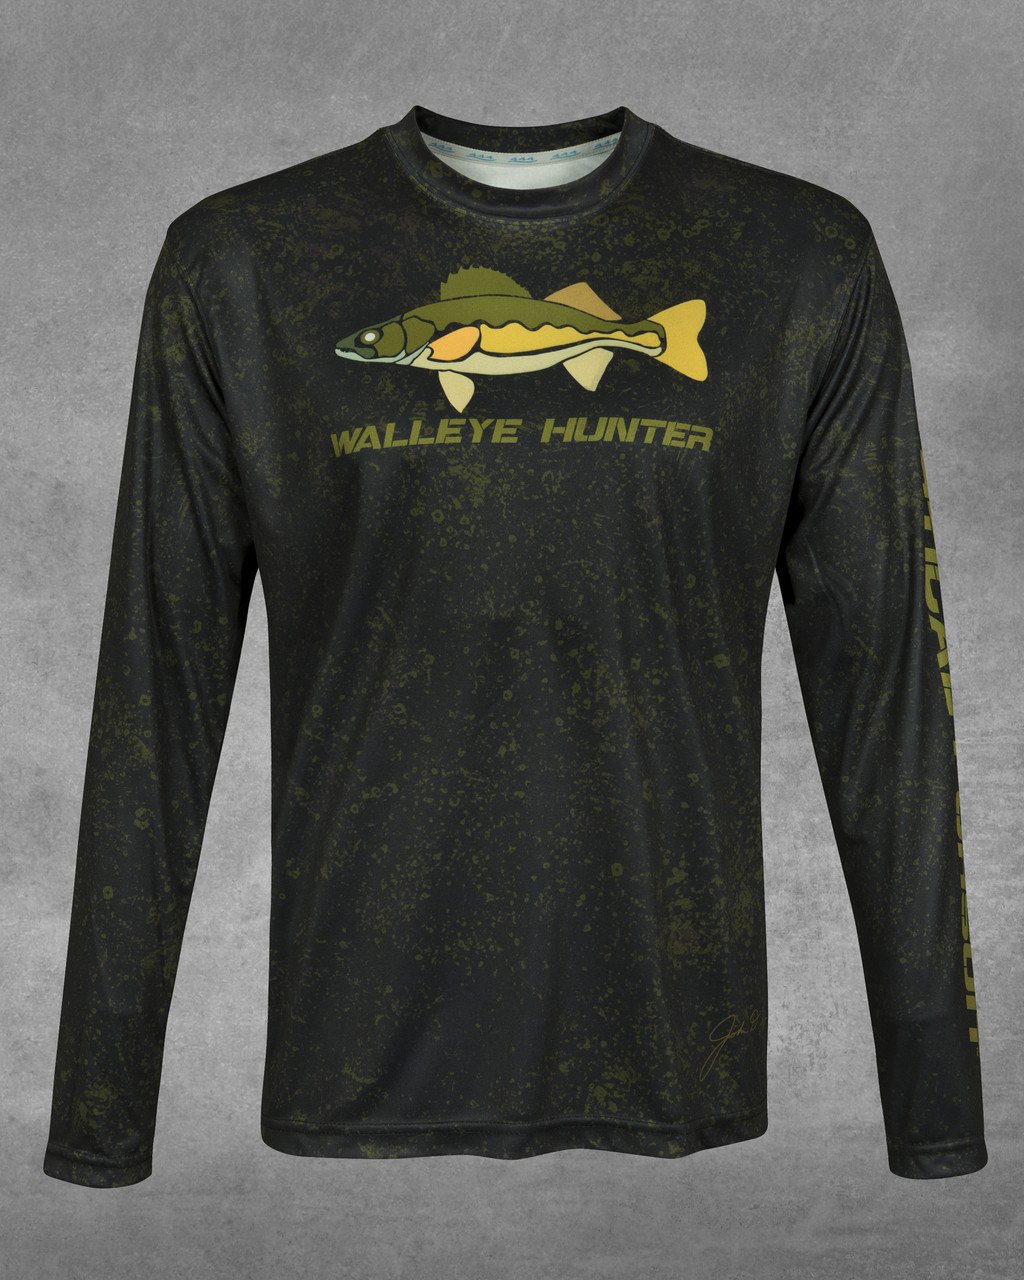 Upf Performance Shirts Fisherman Clothing Outdoor Apparel